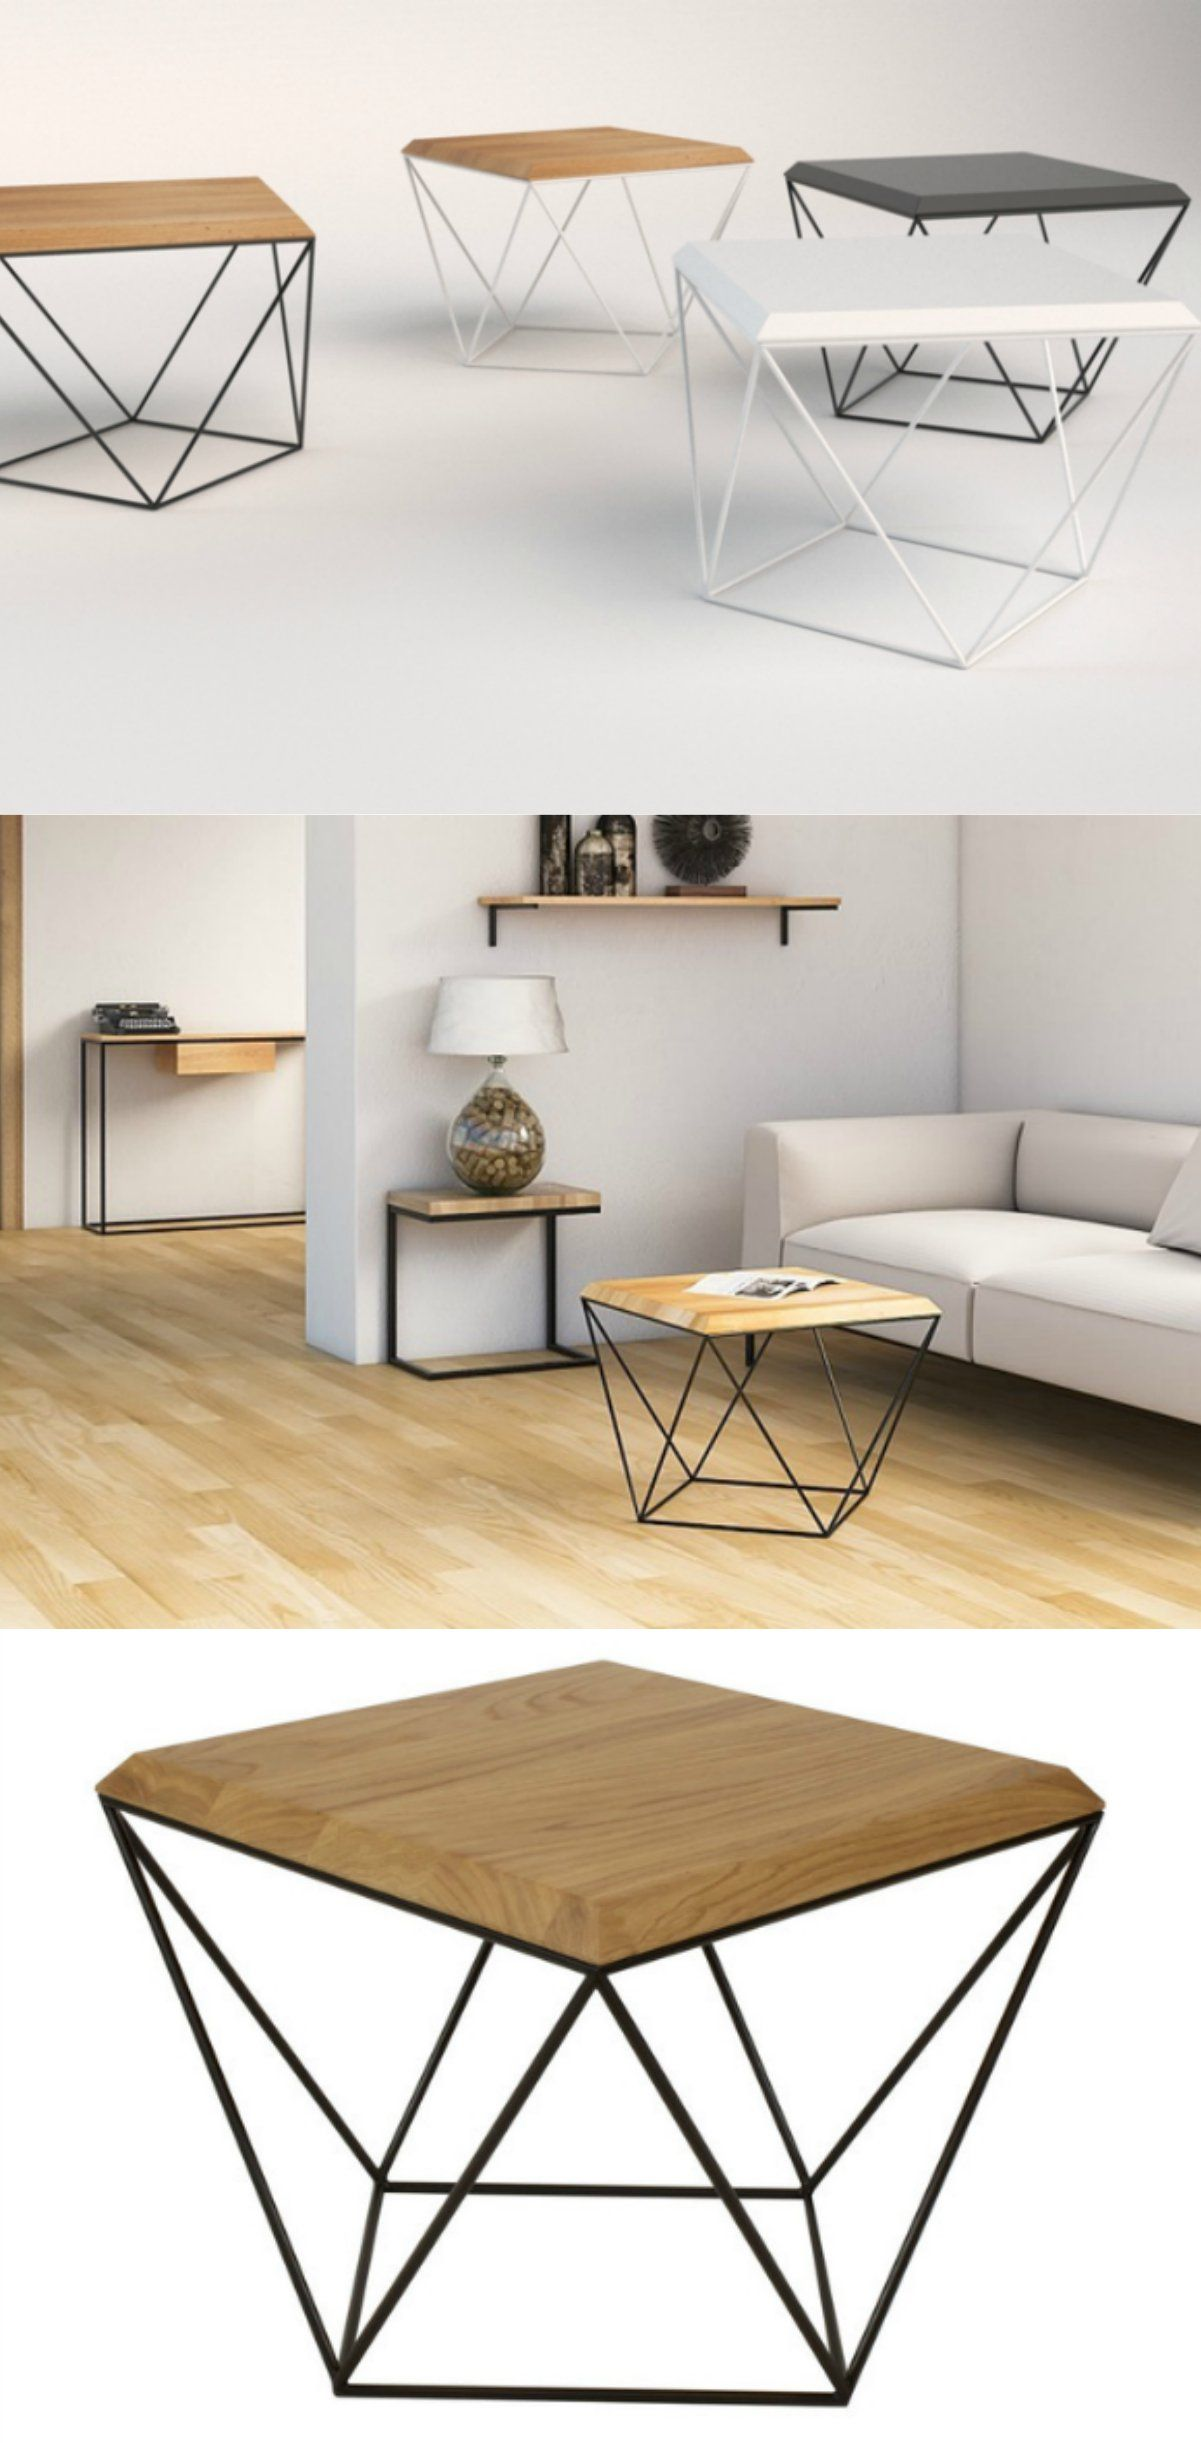 Tulip wood is a minimalist coffee table with an intriguing geometric silhouette just turn it 90 degrees and watch it get a totally different shape